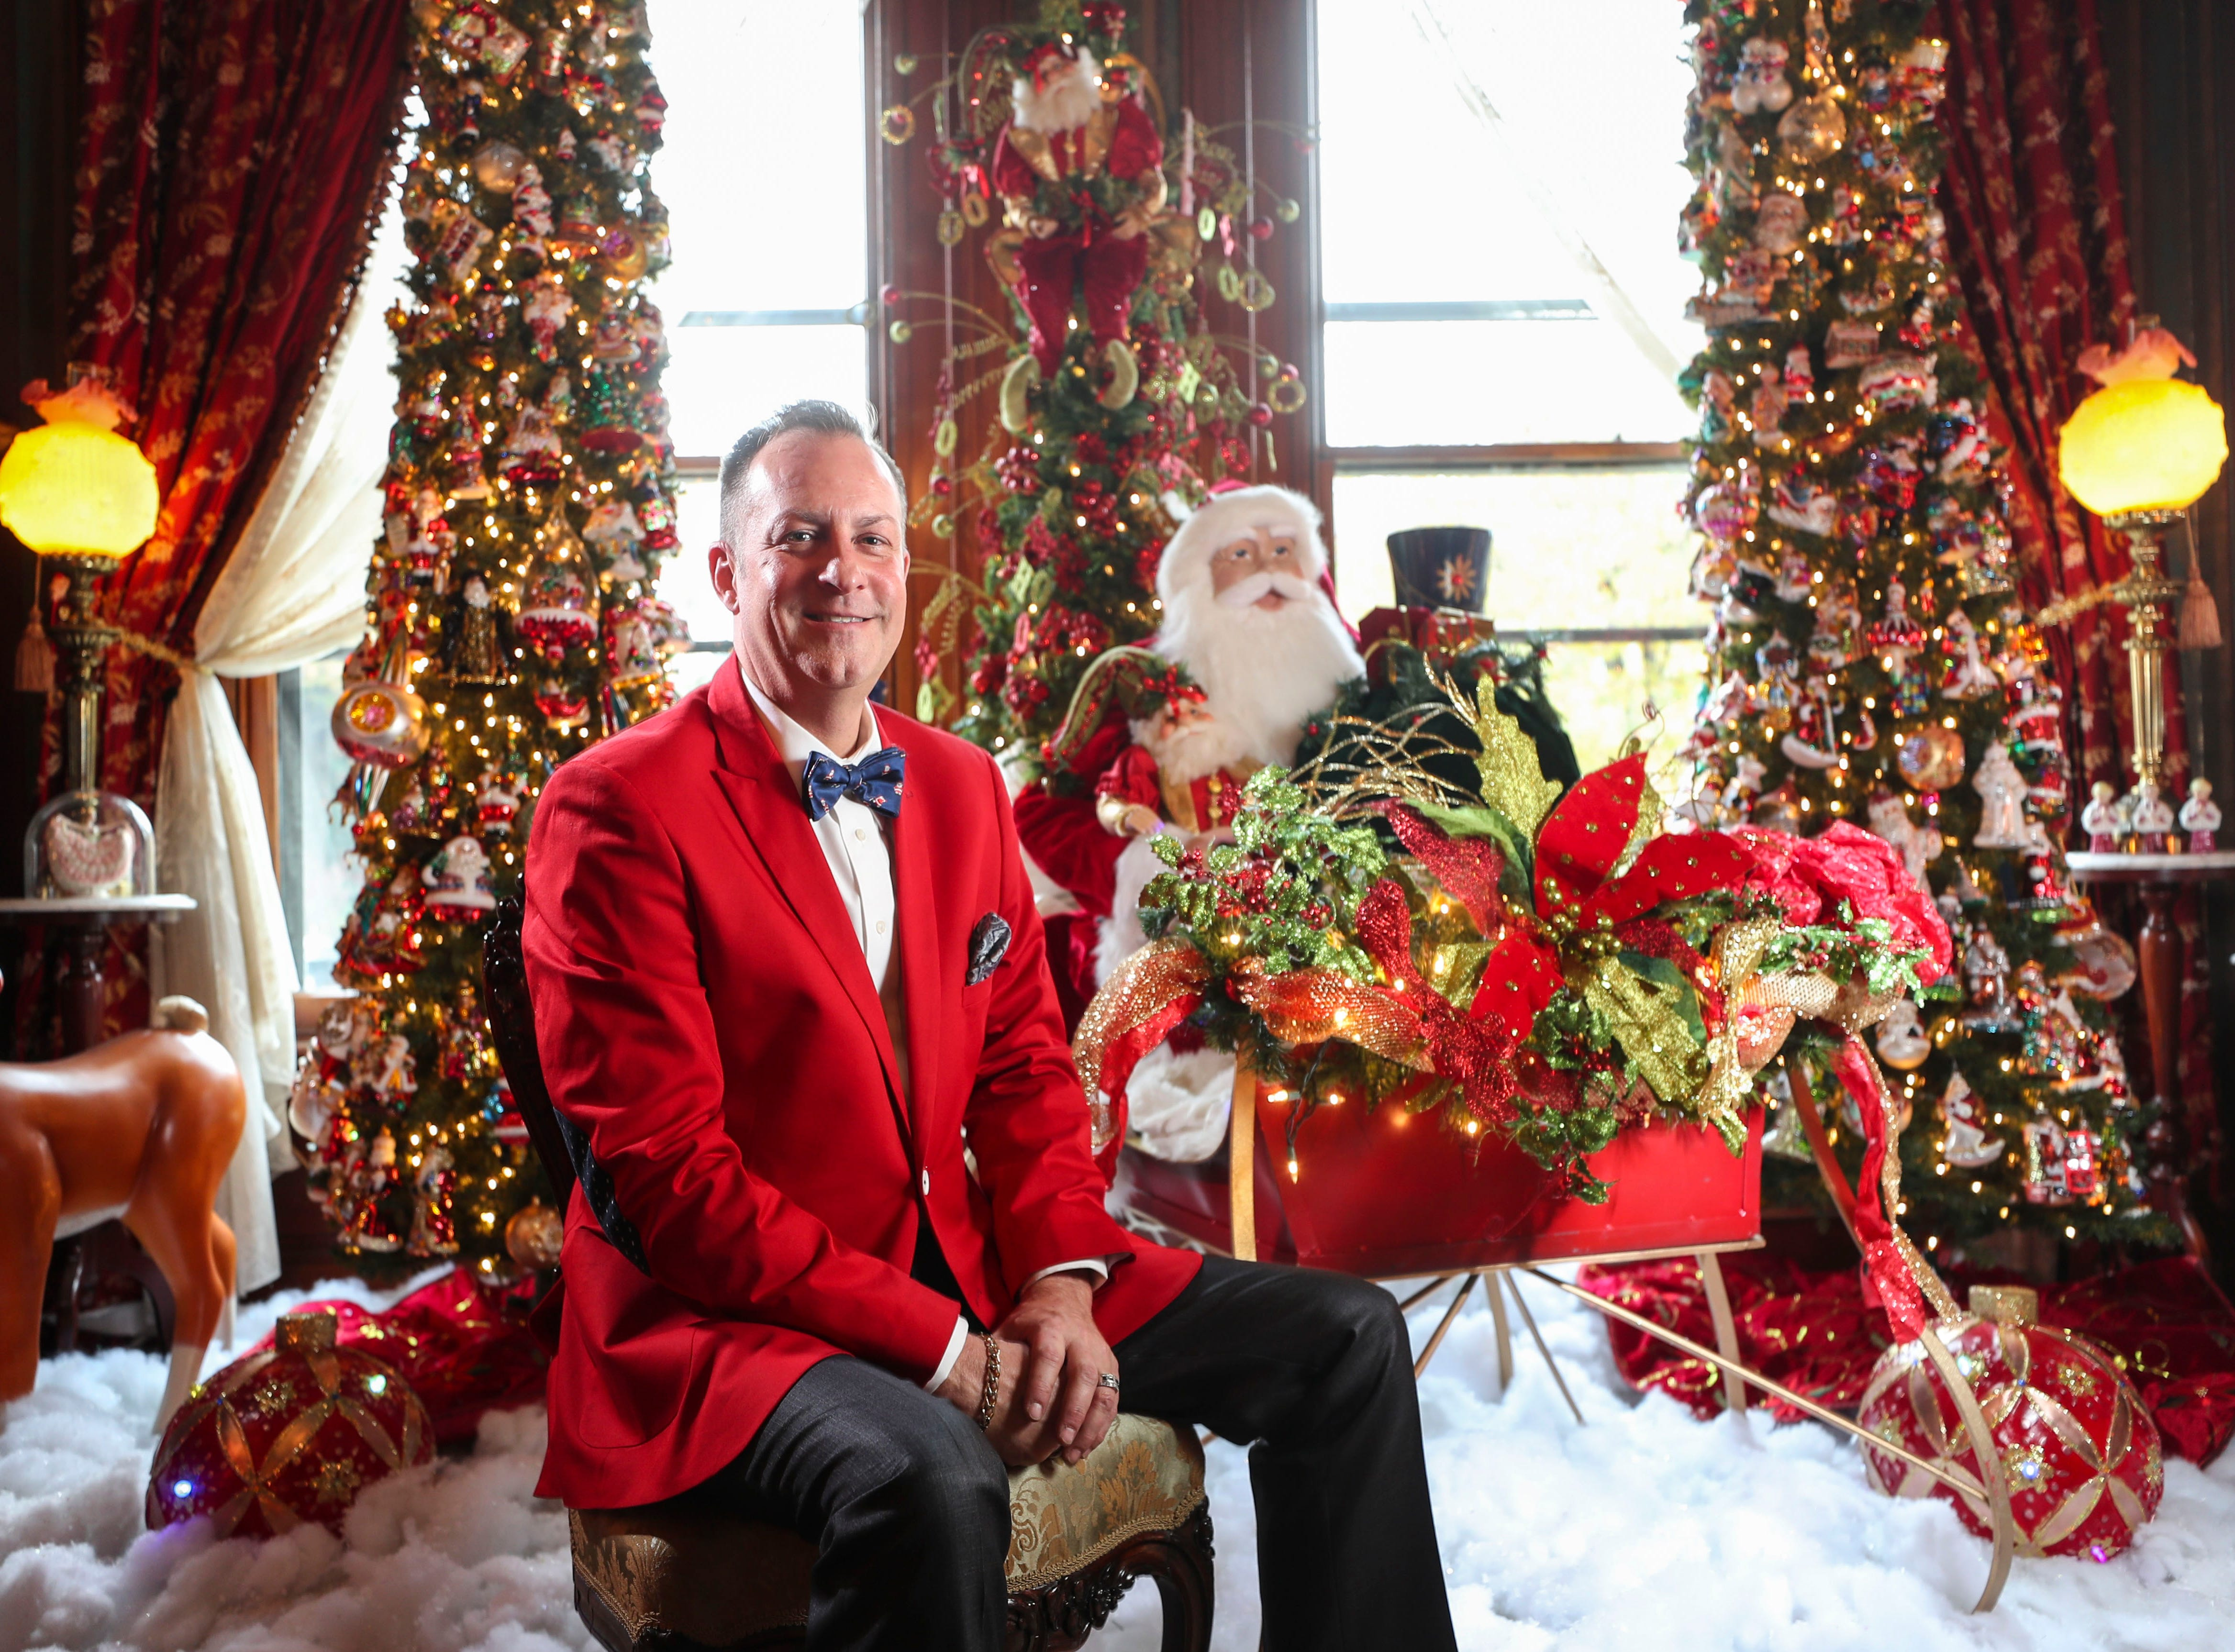 """""""Christmas was always very special to me, and I'm trying to do the same thing by giving people inspiration,"""" said homeowner David Brown. """"Hopefully when they leave here, they're happy and filled with joy in their heart for the Christmas season."""""""